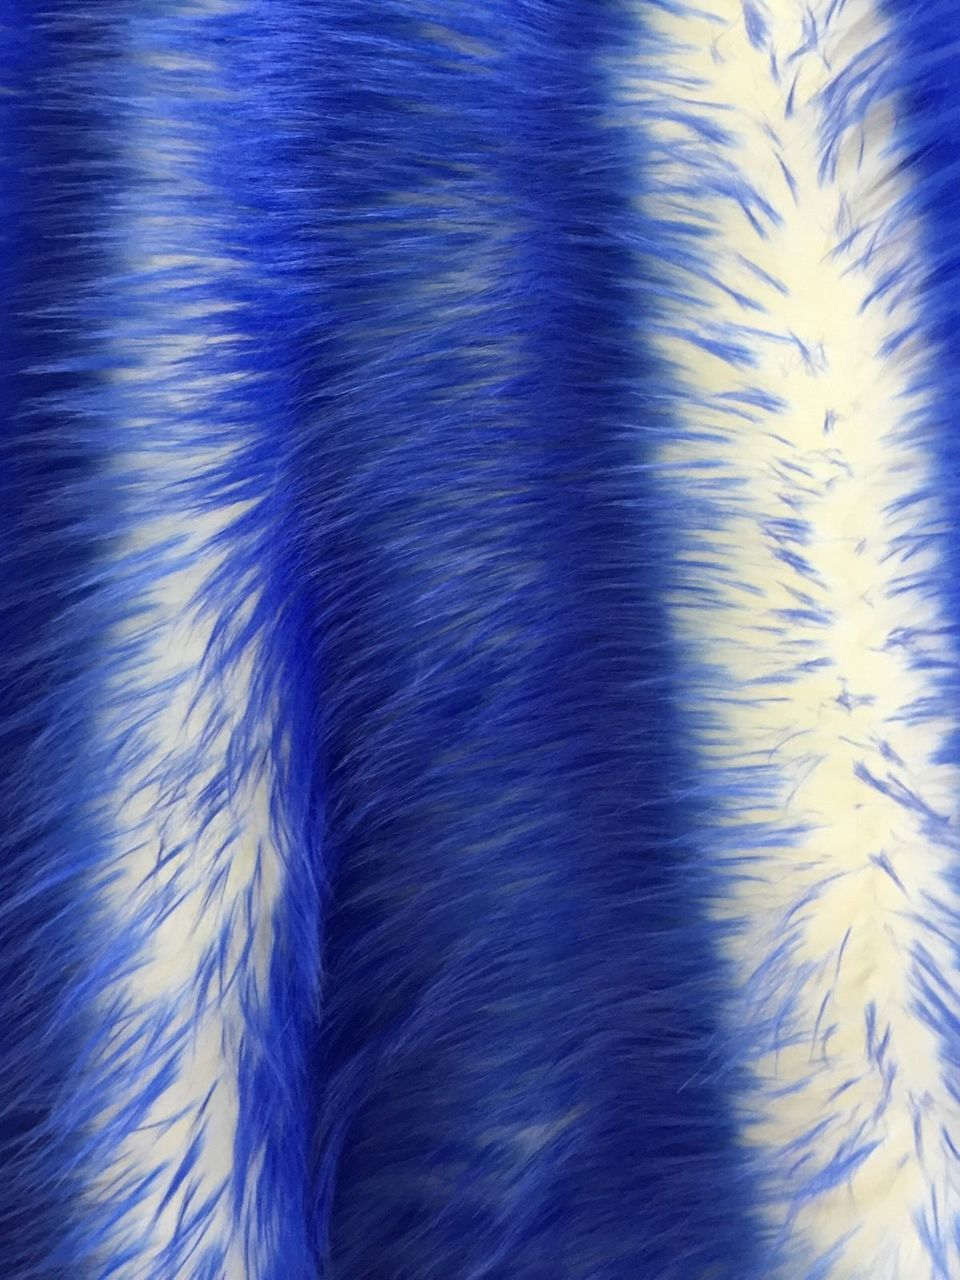 Super Soft Faux Twotone Shaggy Royal Blue Offwhite Fabric. Sold By Yard - KINGDOM OF FABRICS